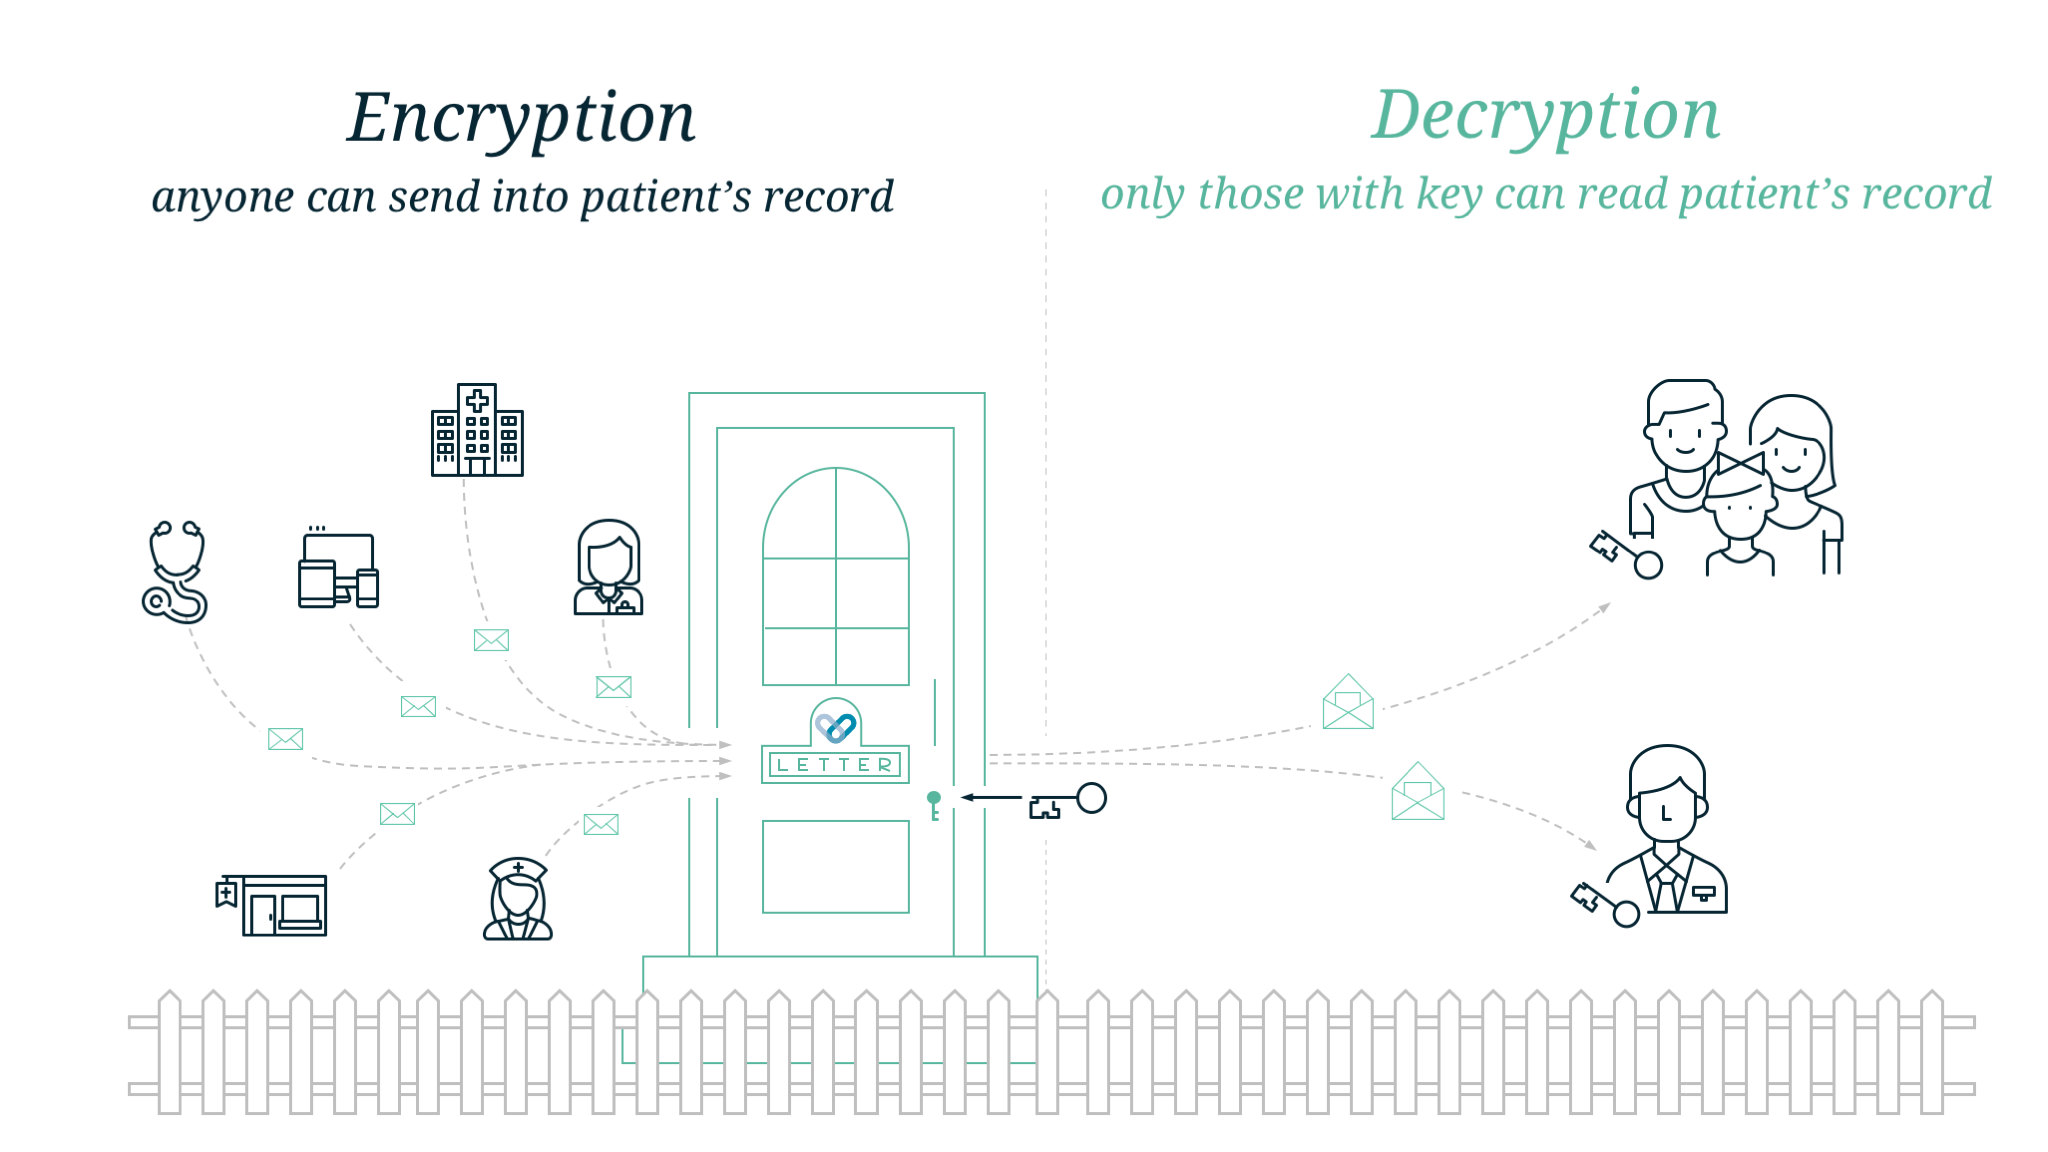 Speeding up PKB's decryption and upgrading encryption – Patients